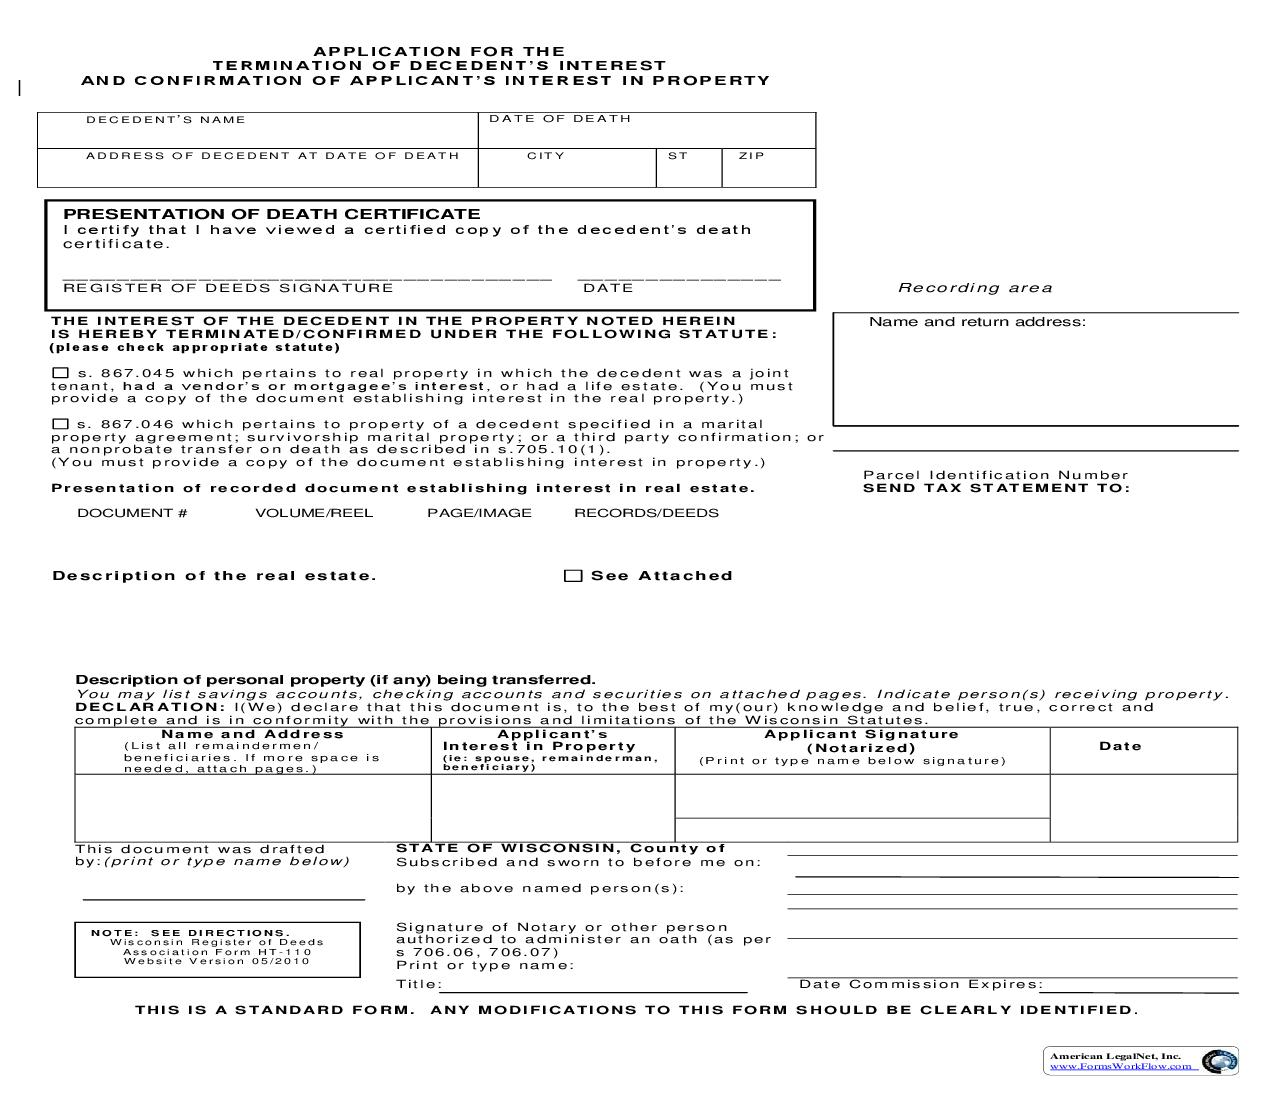 Application For The Termination Of Decedents Interest And Confirmation Of Applicants Interest In Property {HT-110} | Pdf Fpdf Doc Docx | Wisconsin